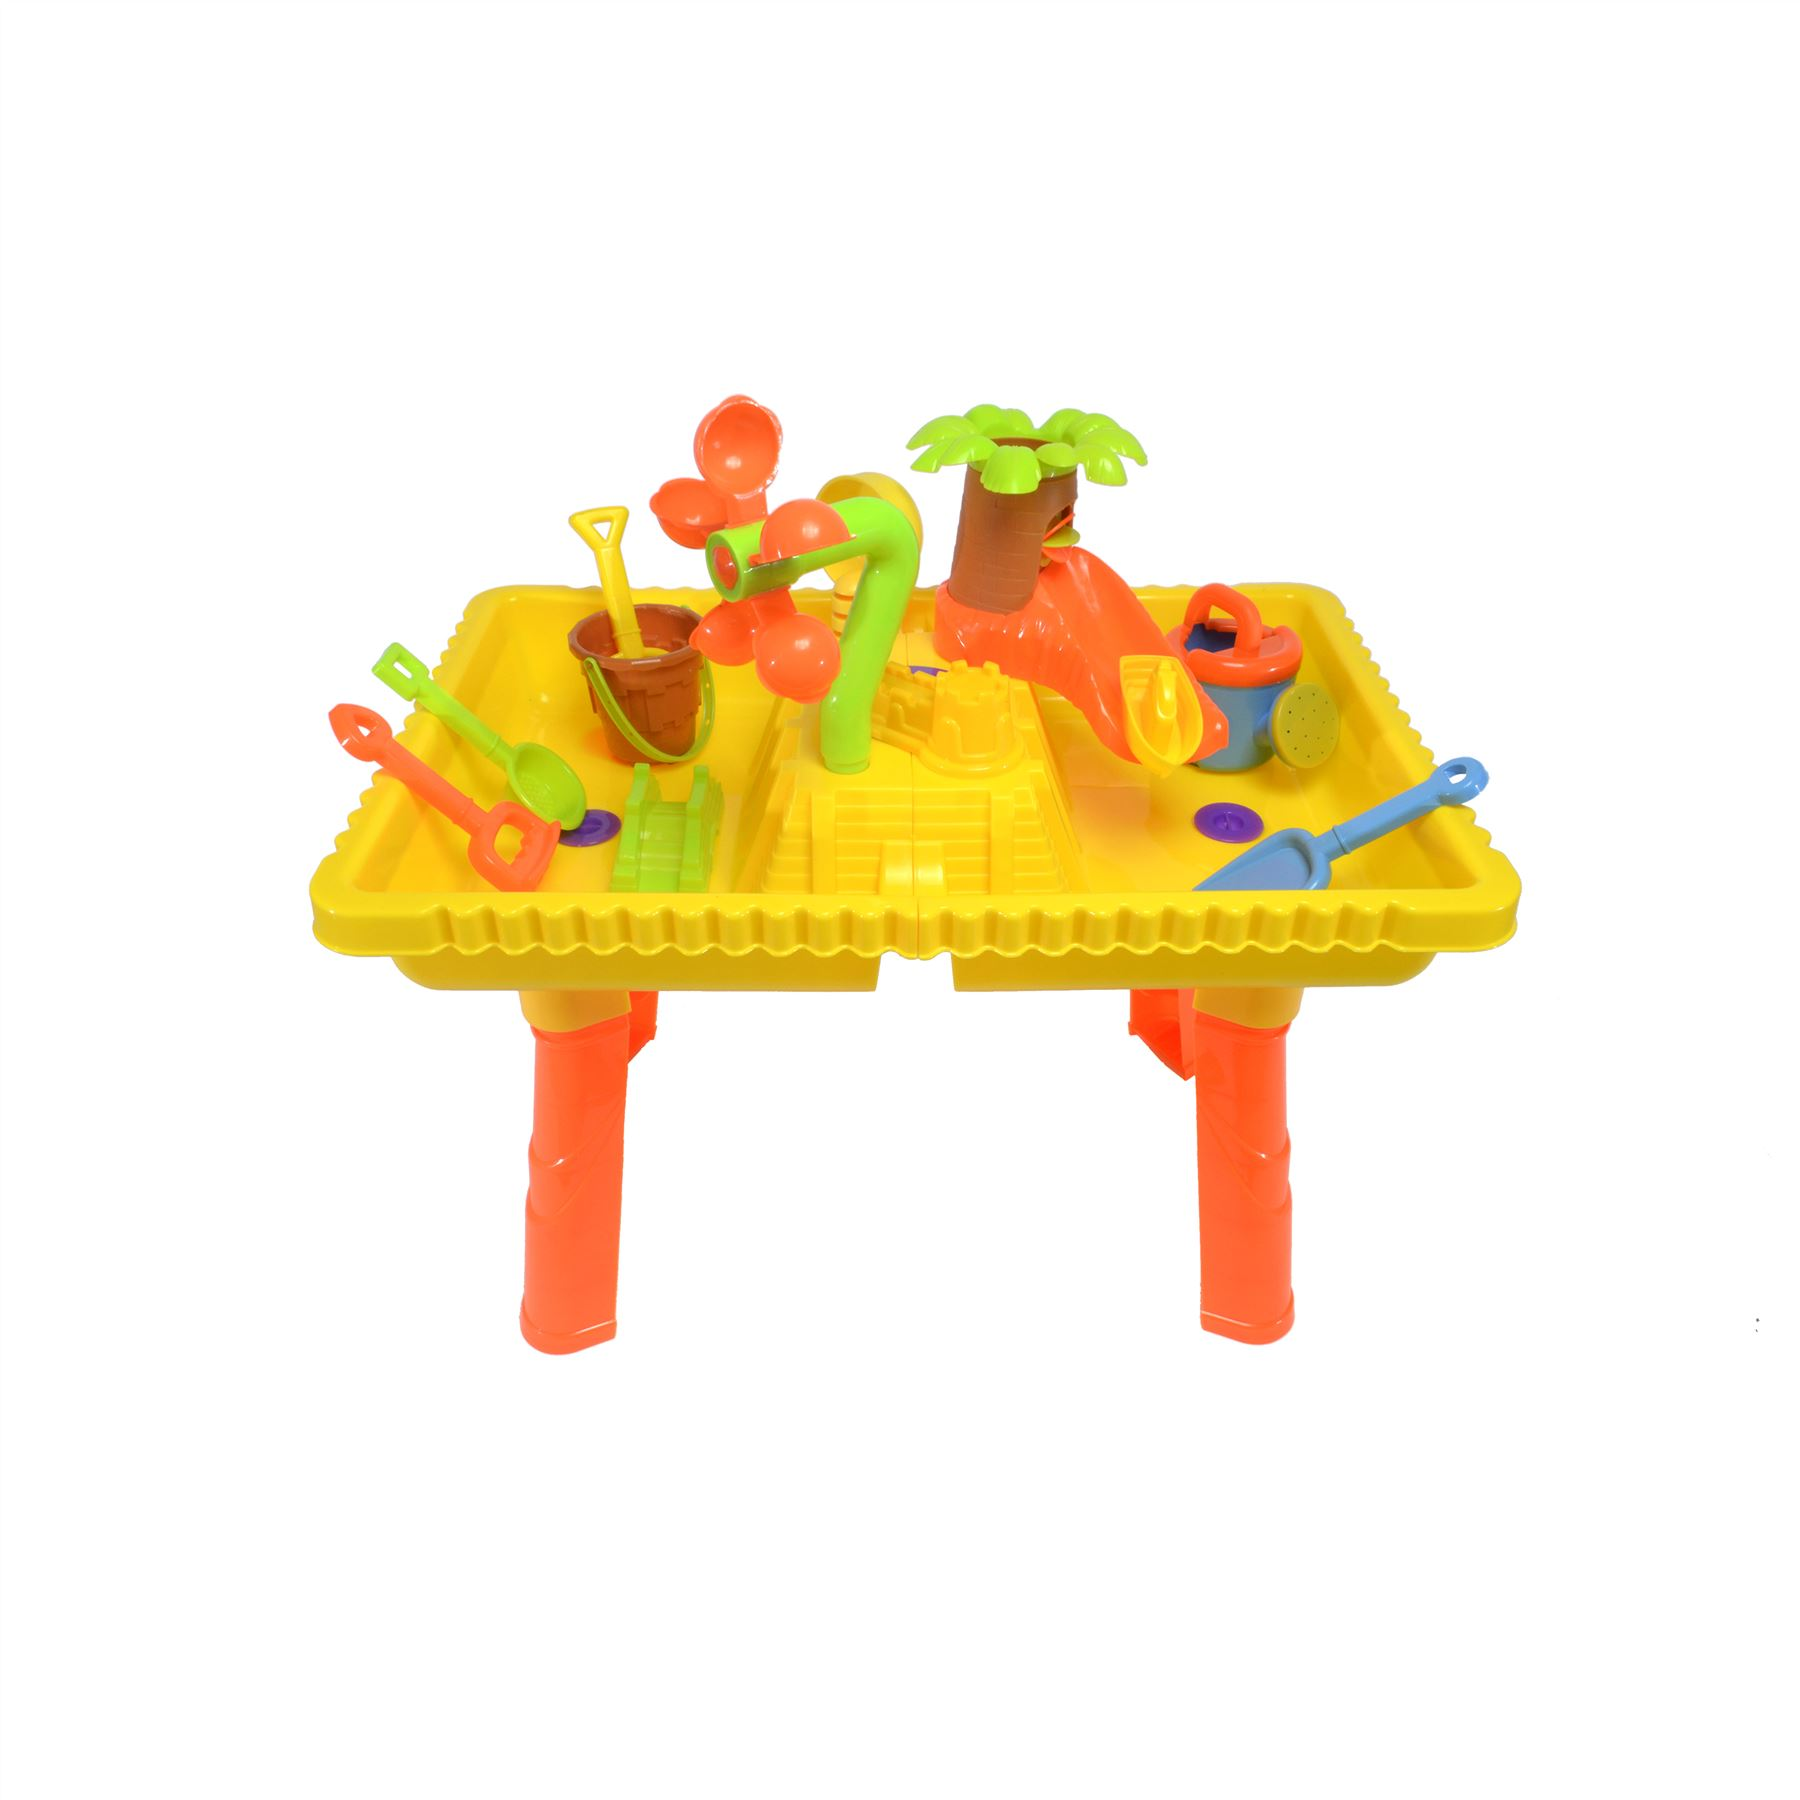 Castle Sand and Water Table set with 2 seats and 10 pieces 9809 6